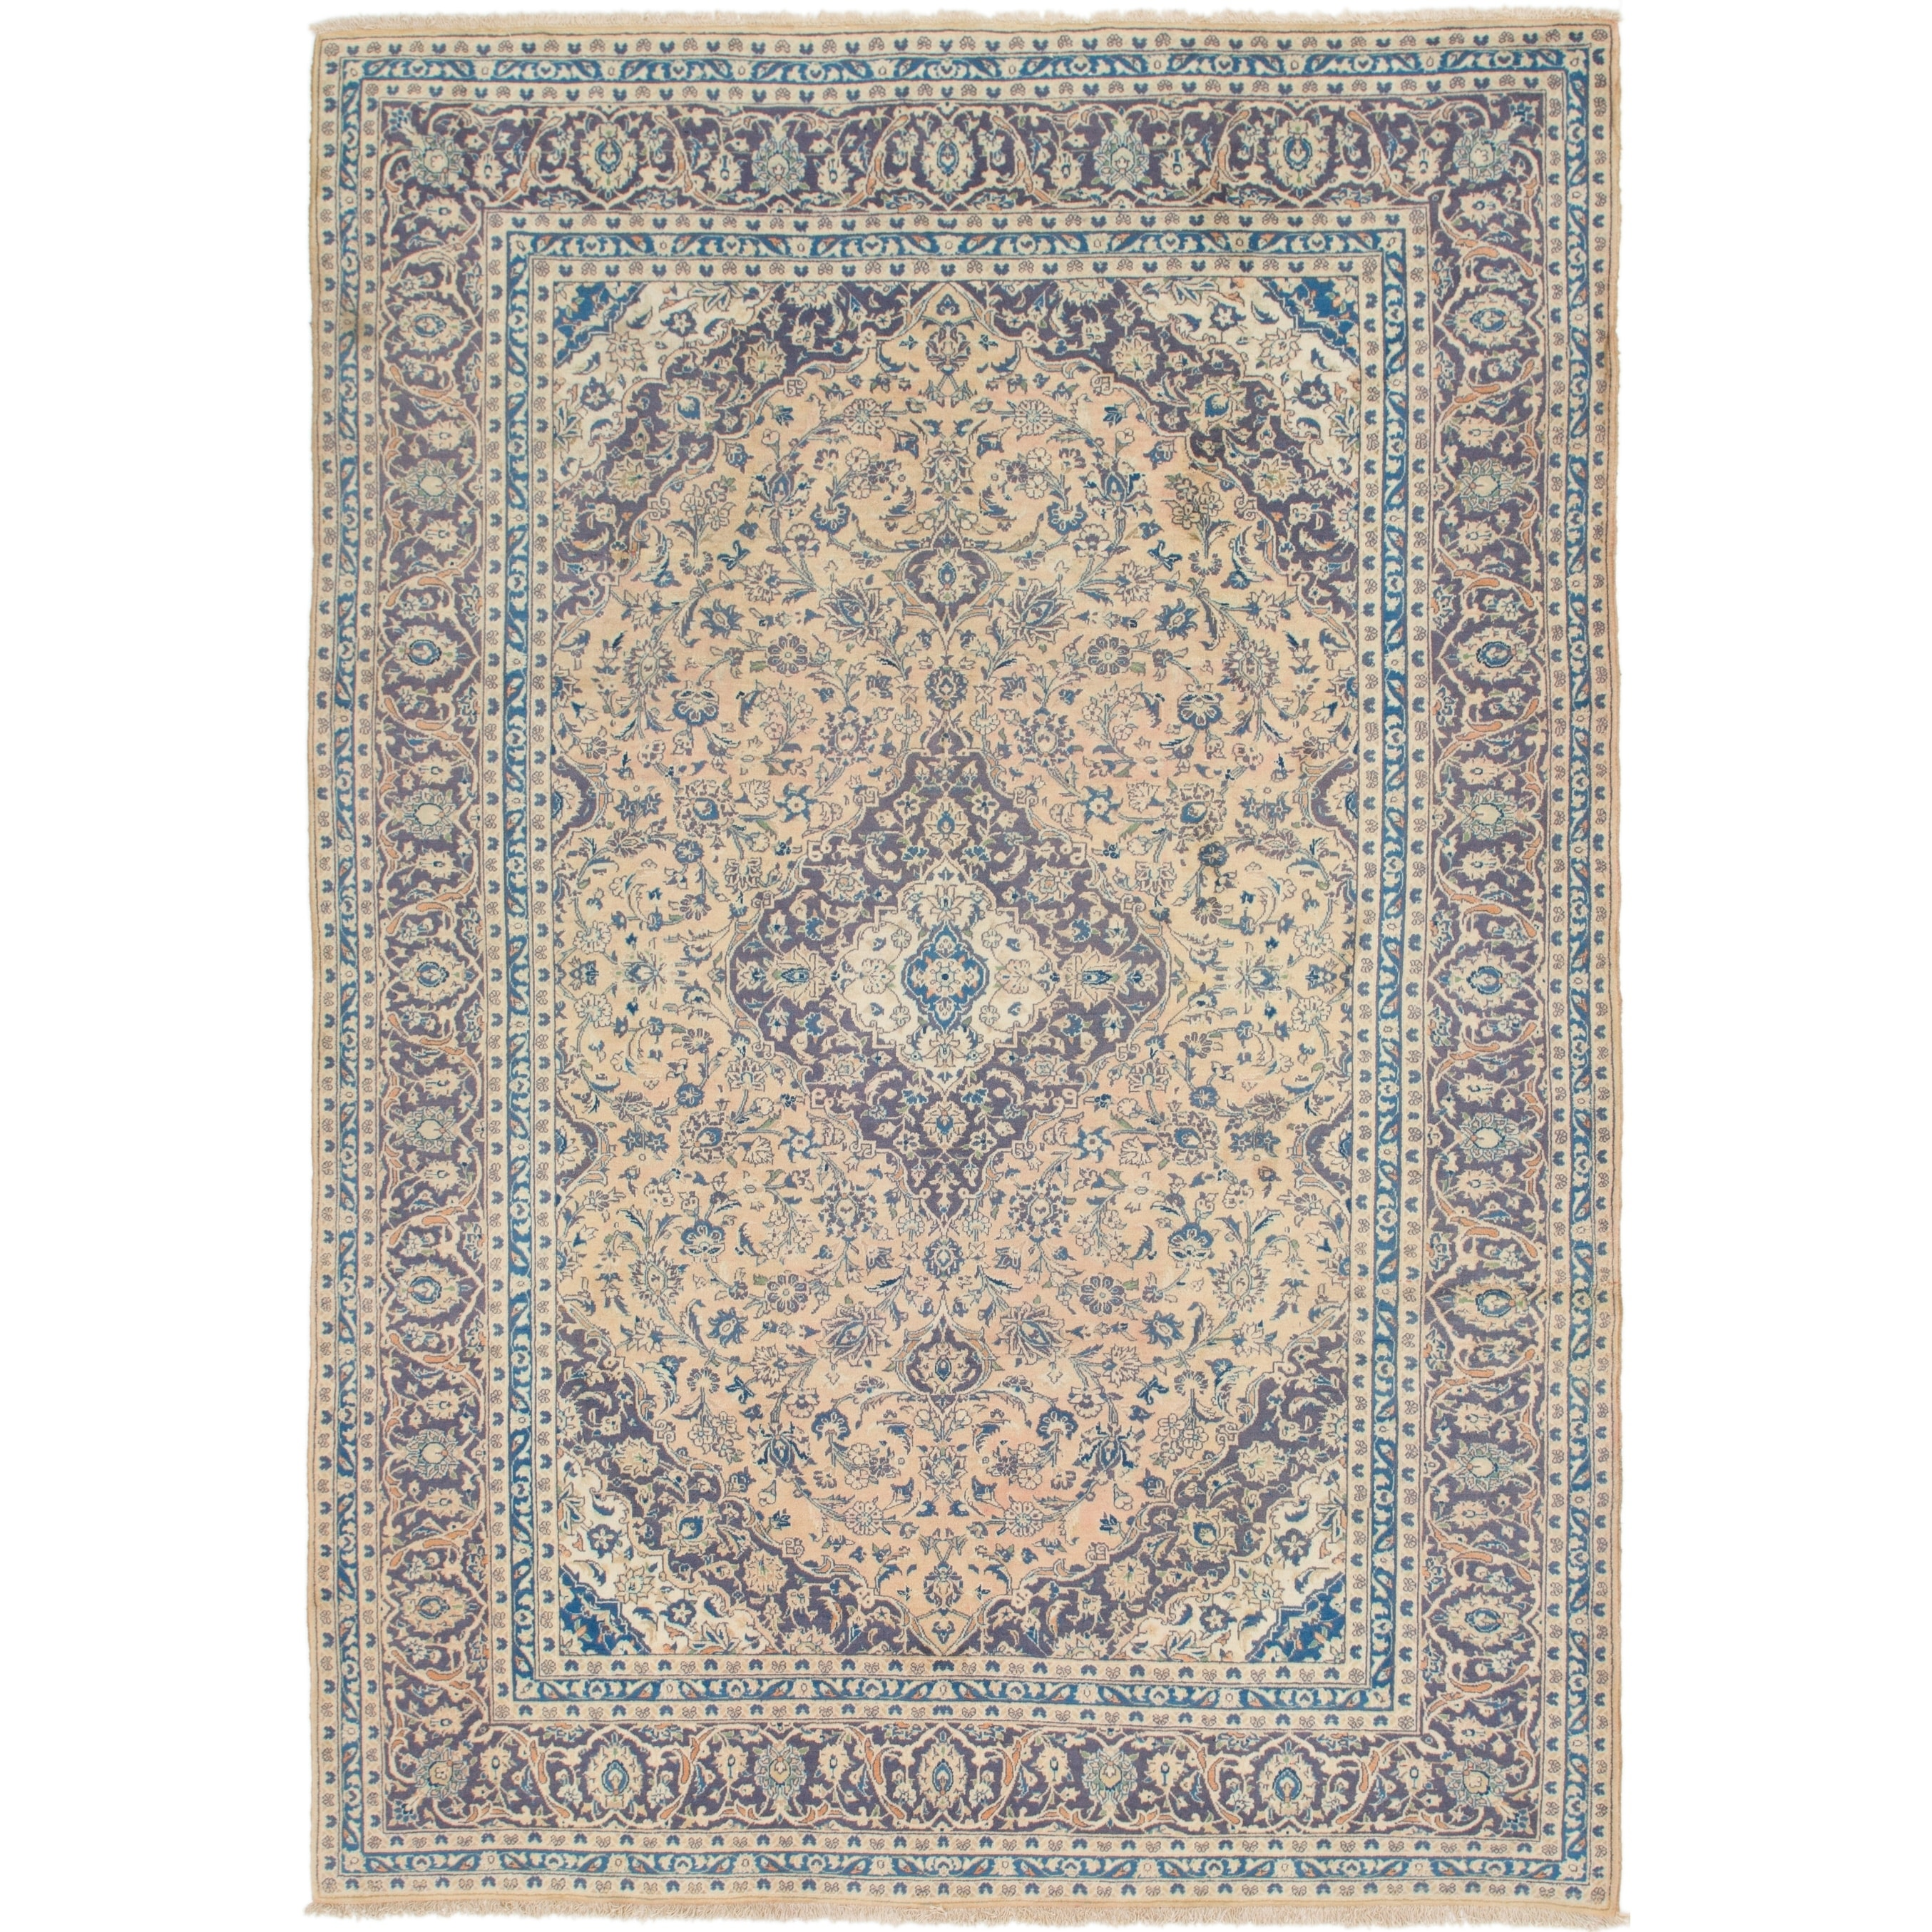 Hand Knotted Kashan Semi Antique Wool Area Rug - 8 x 11 6 (peach - 8 x 11 6)